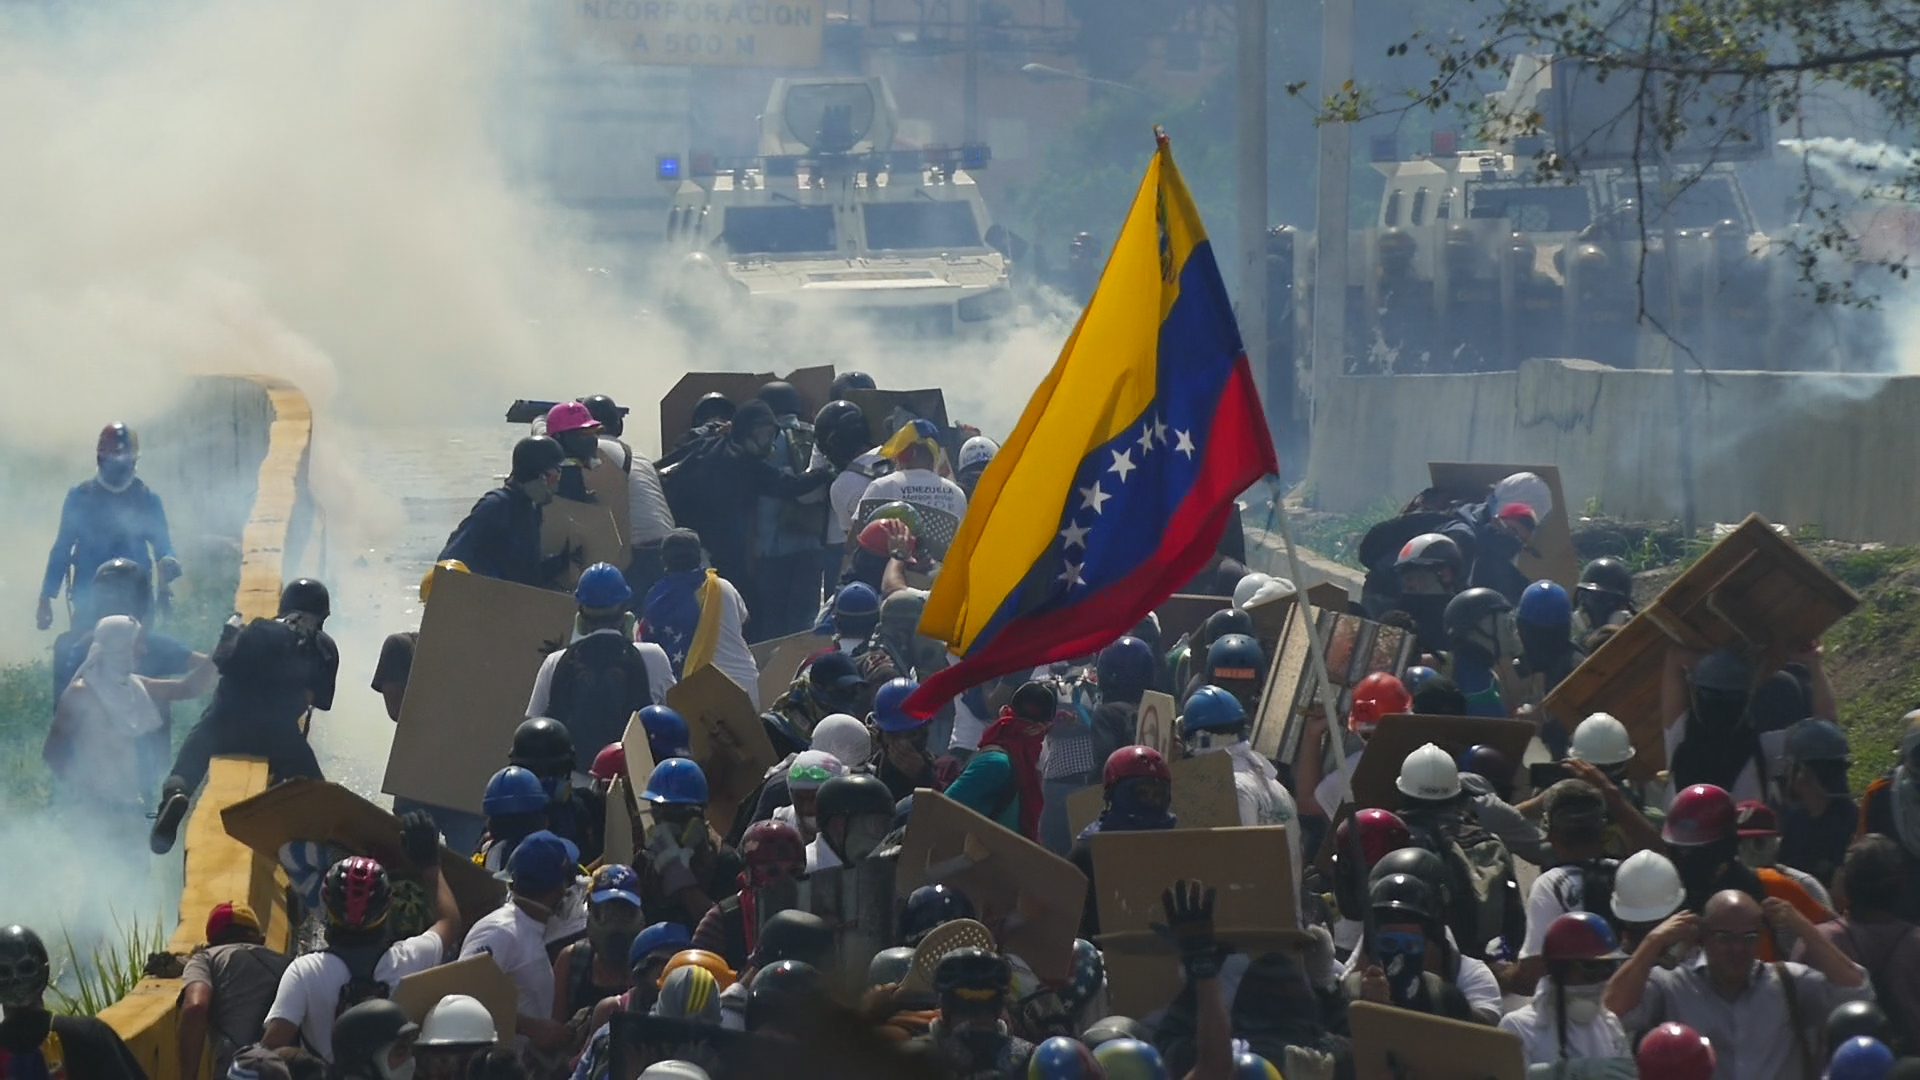 Venezuela: Acts of violence highlight government's disregard for human rights